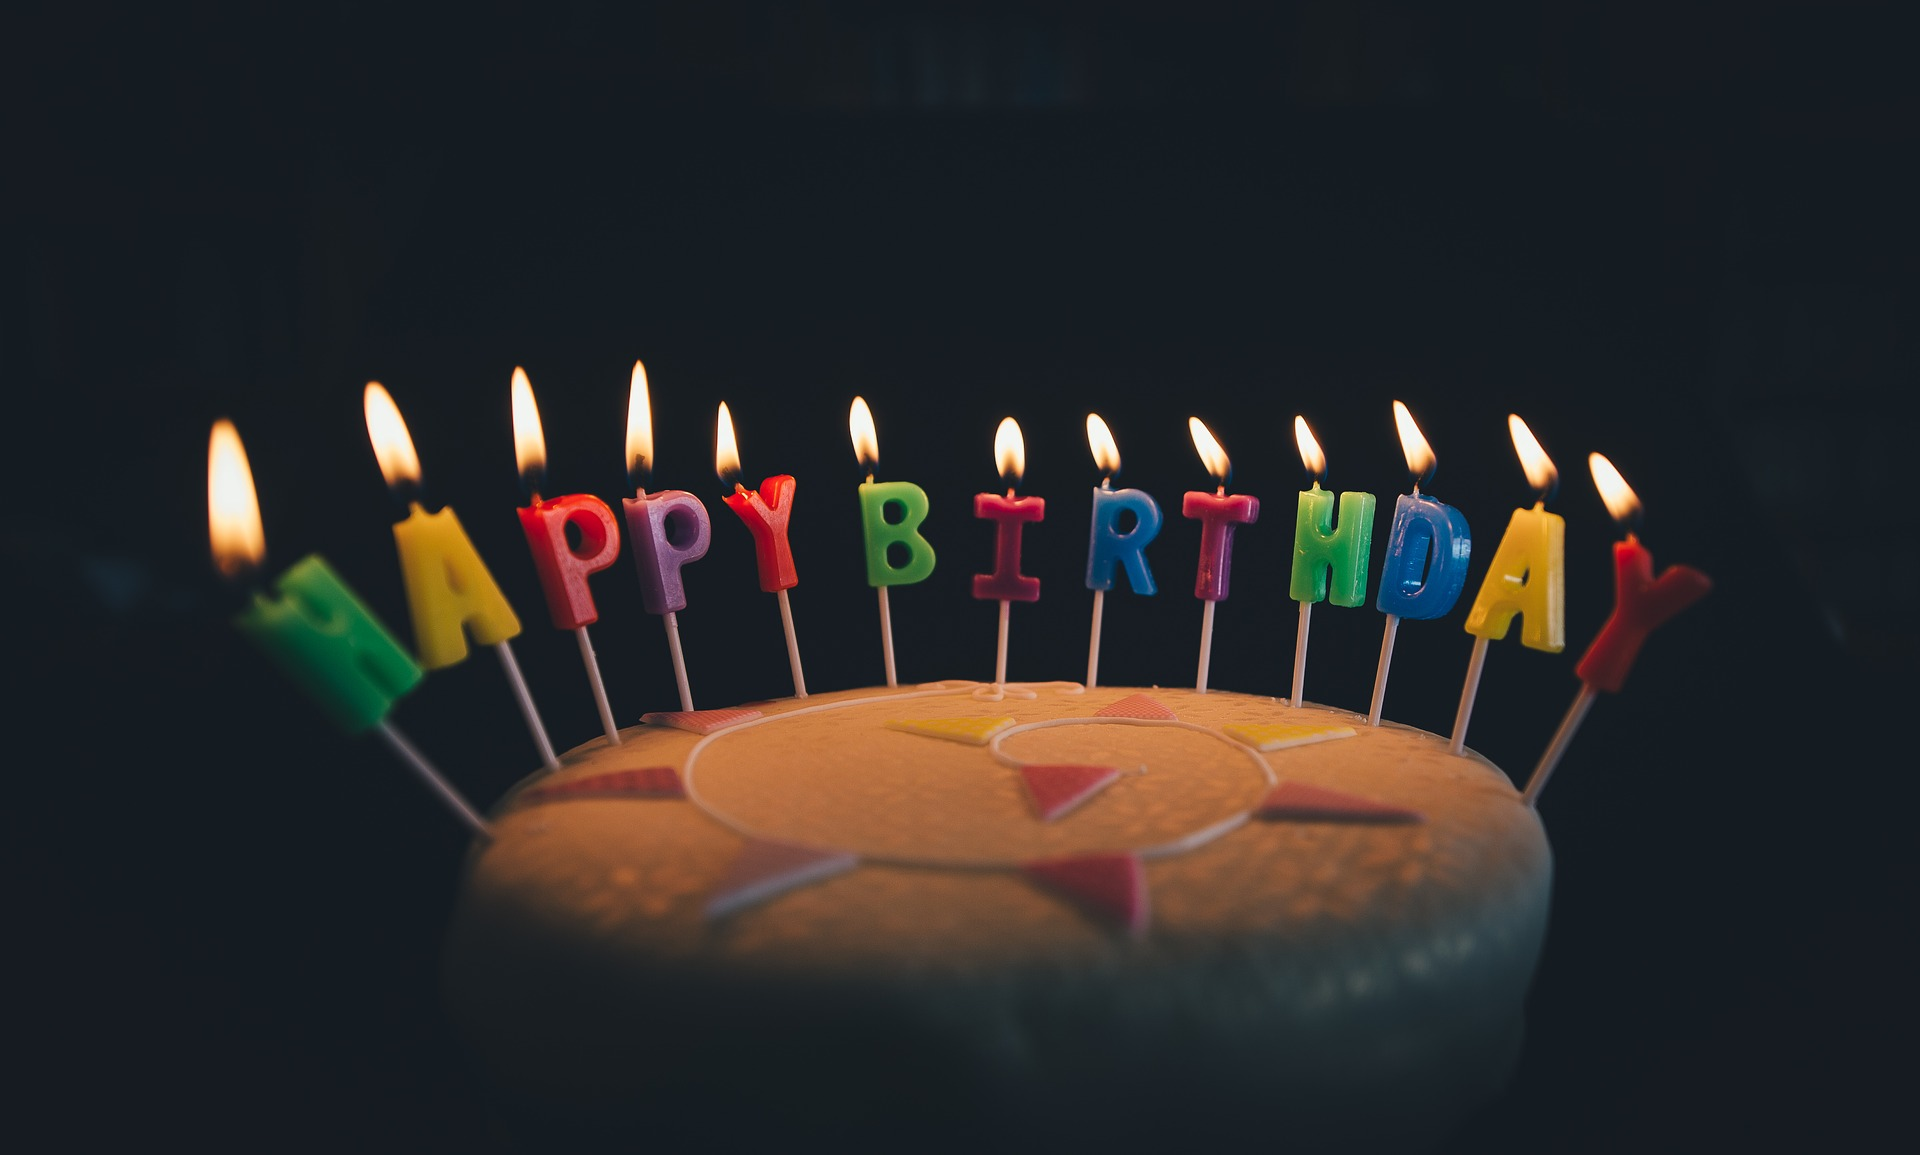 A birthday cake with happy birthday candles